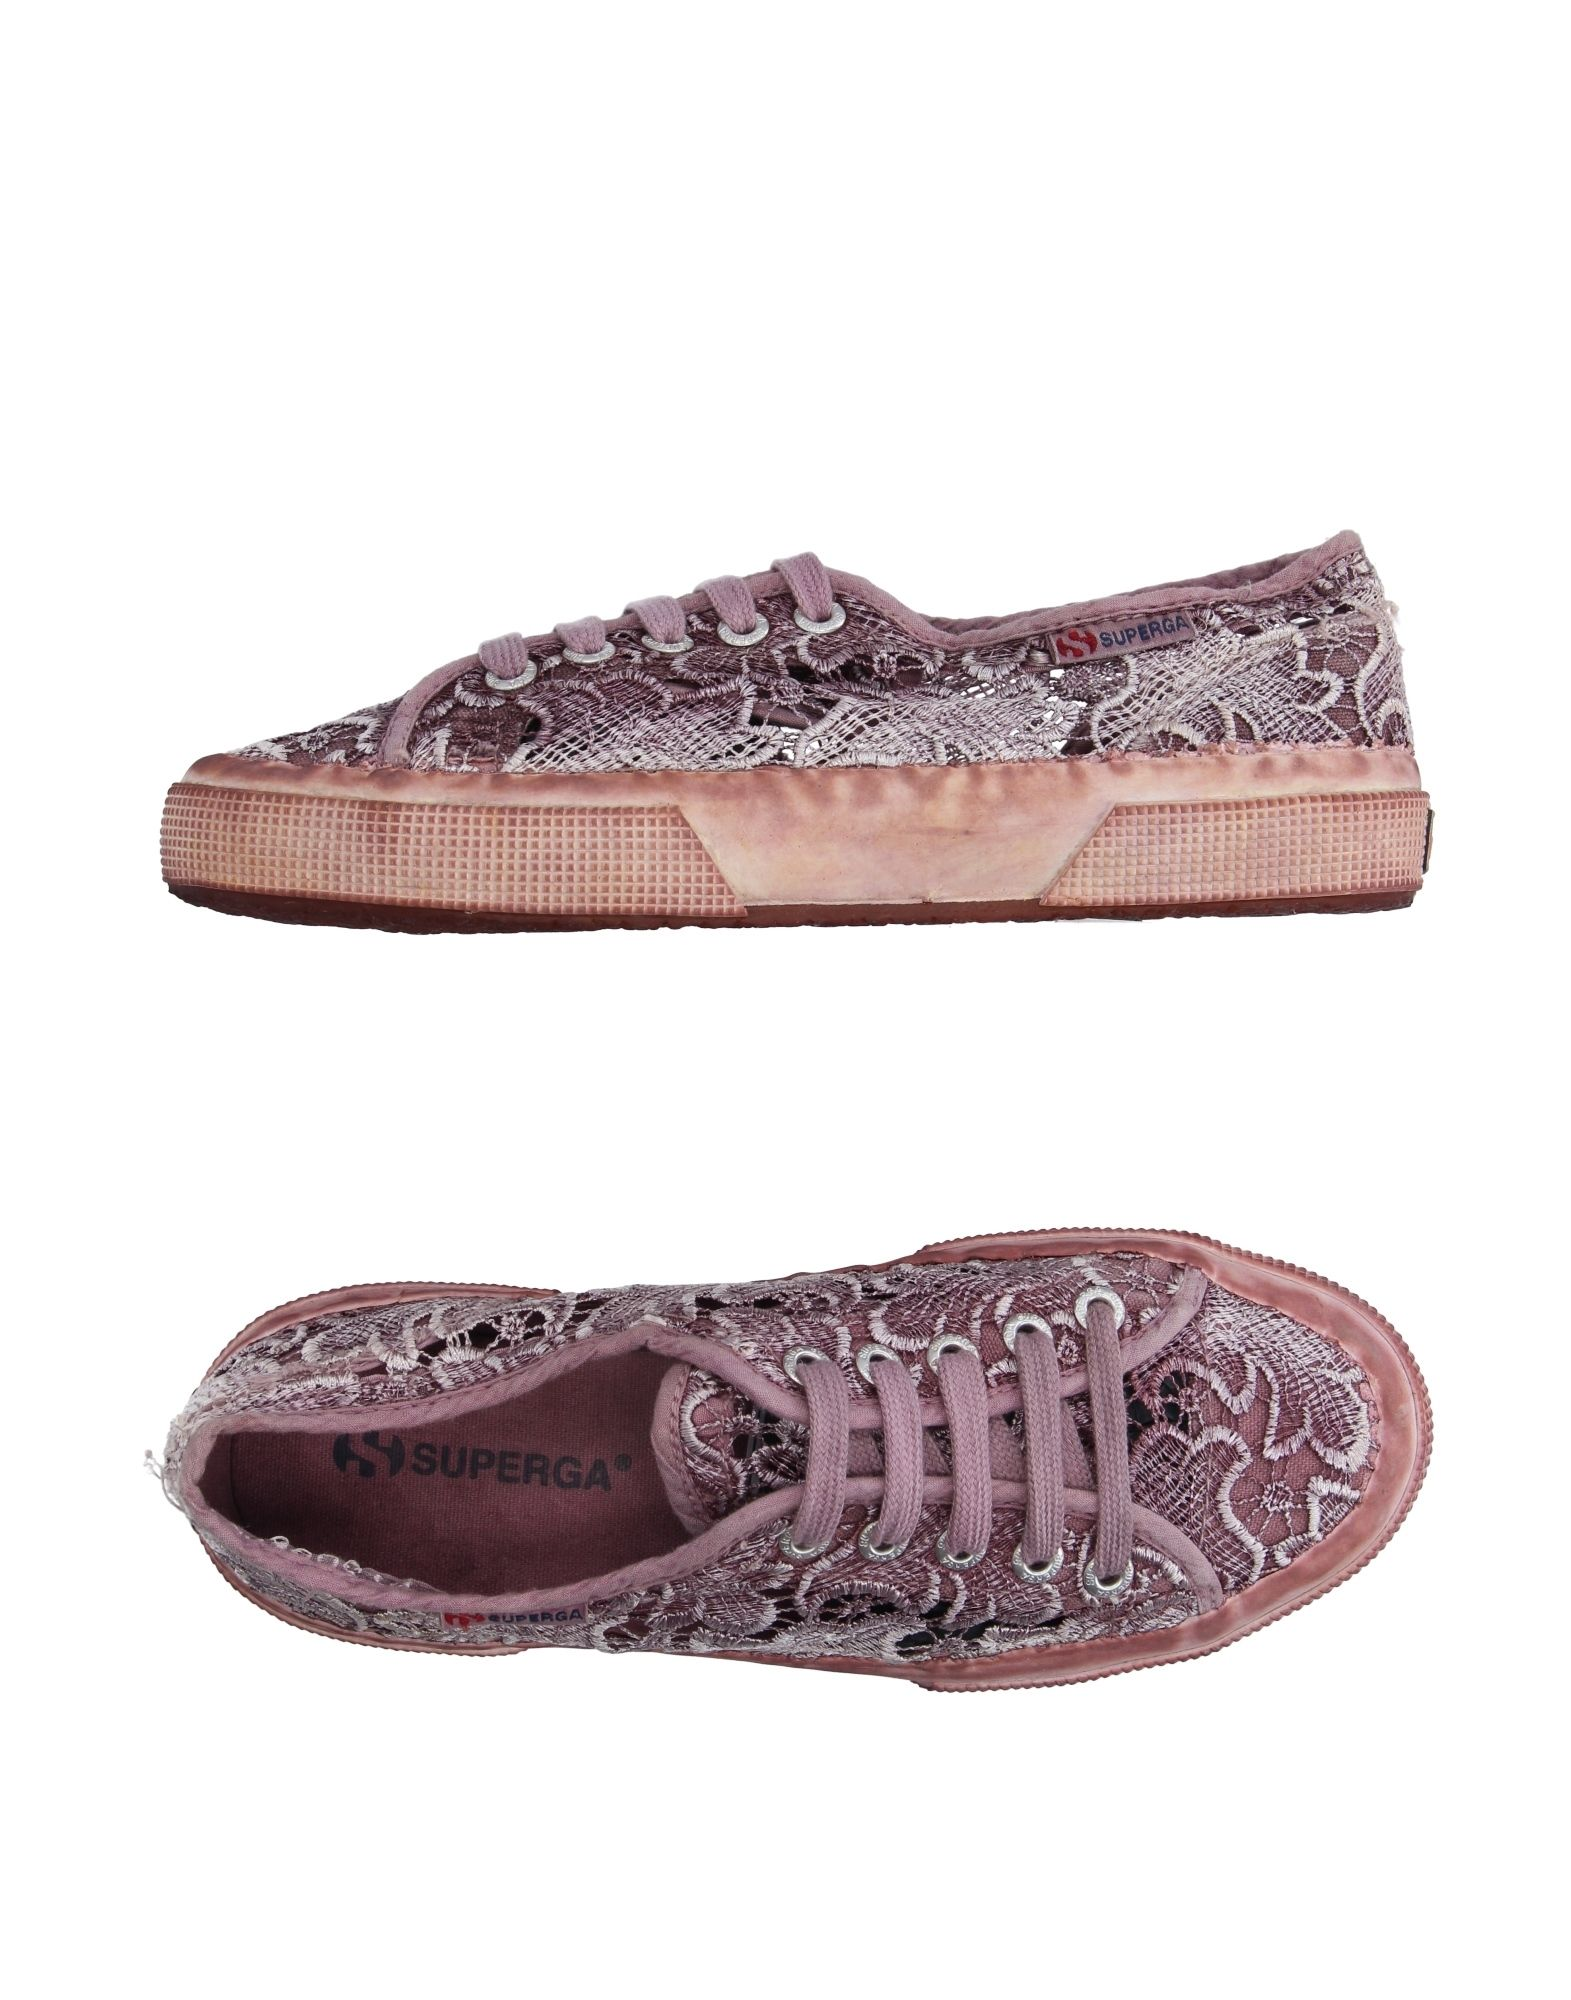 Superga® Sneakers Damen  11173902SA 11173902SA   7191d7